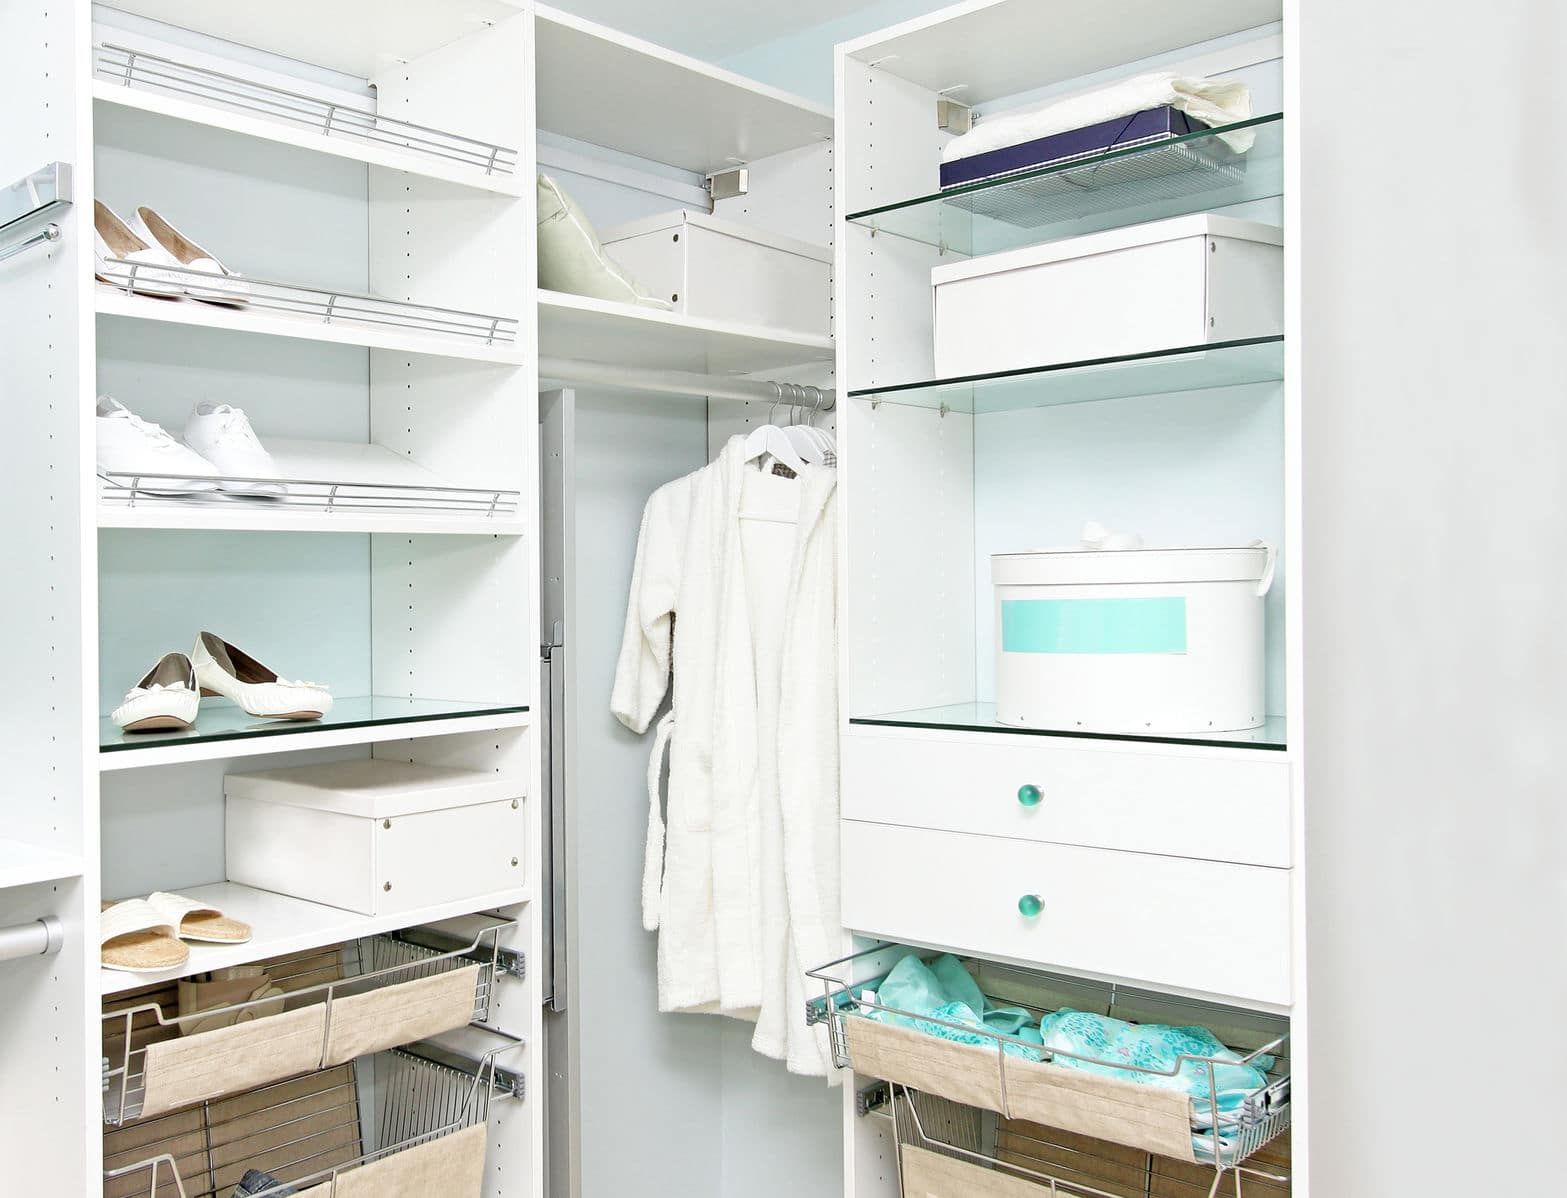 What's better than an organized closet? Decluttering your closet gives you more space, more organization, and more control over your clutter.